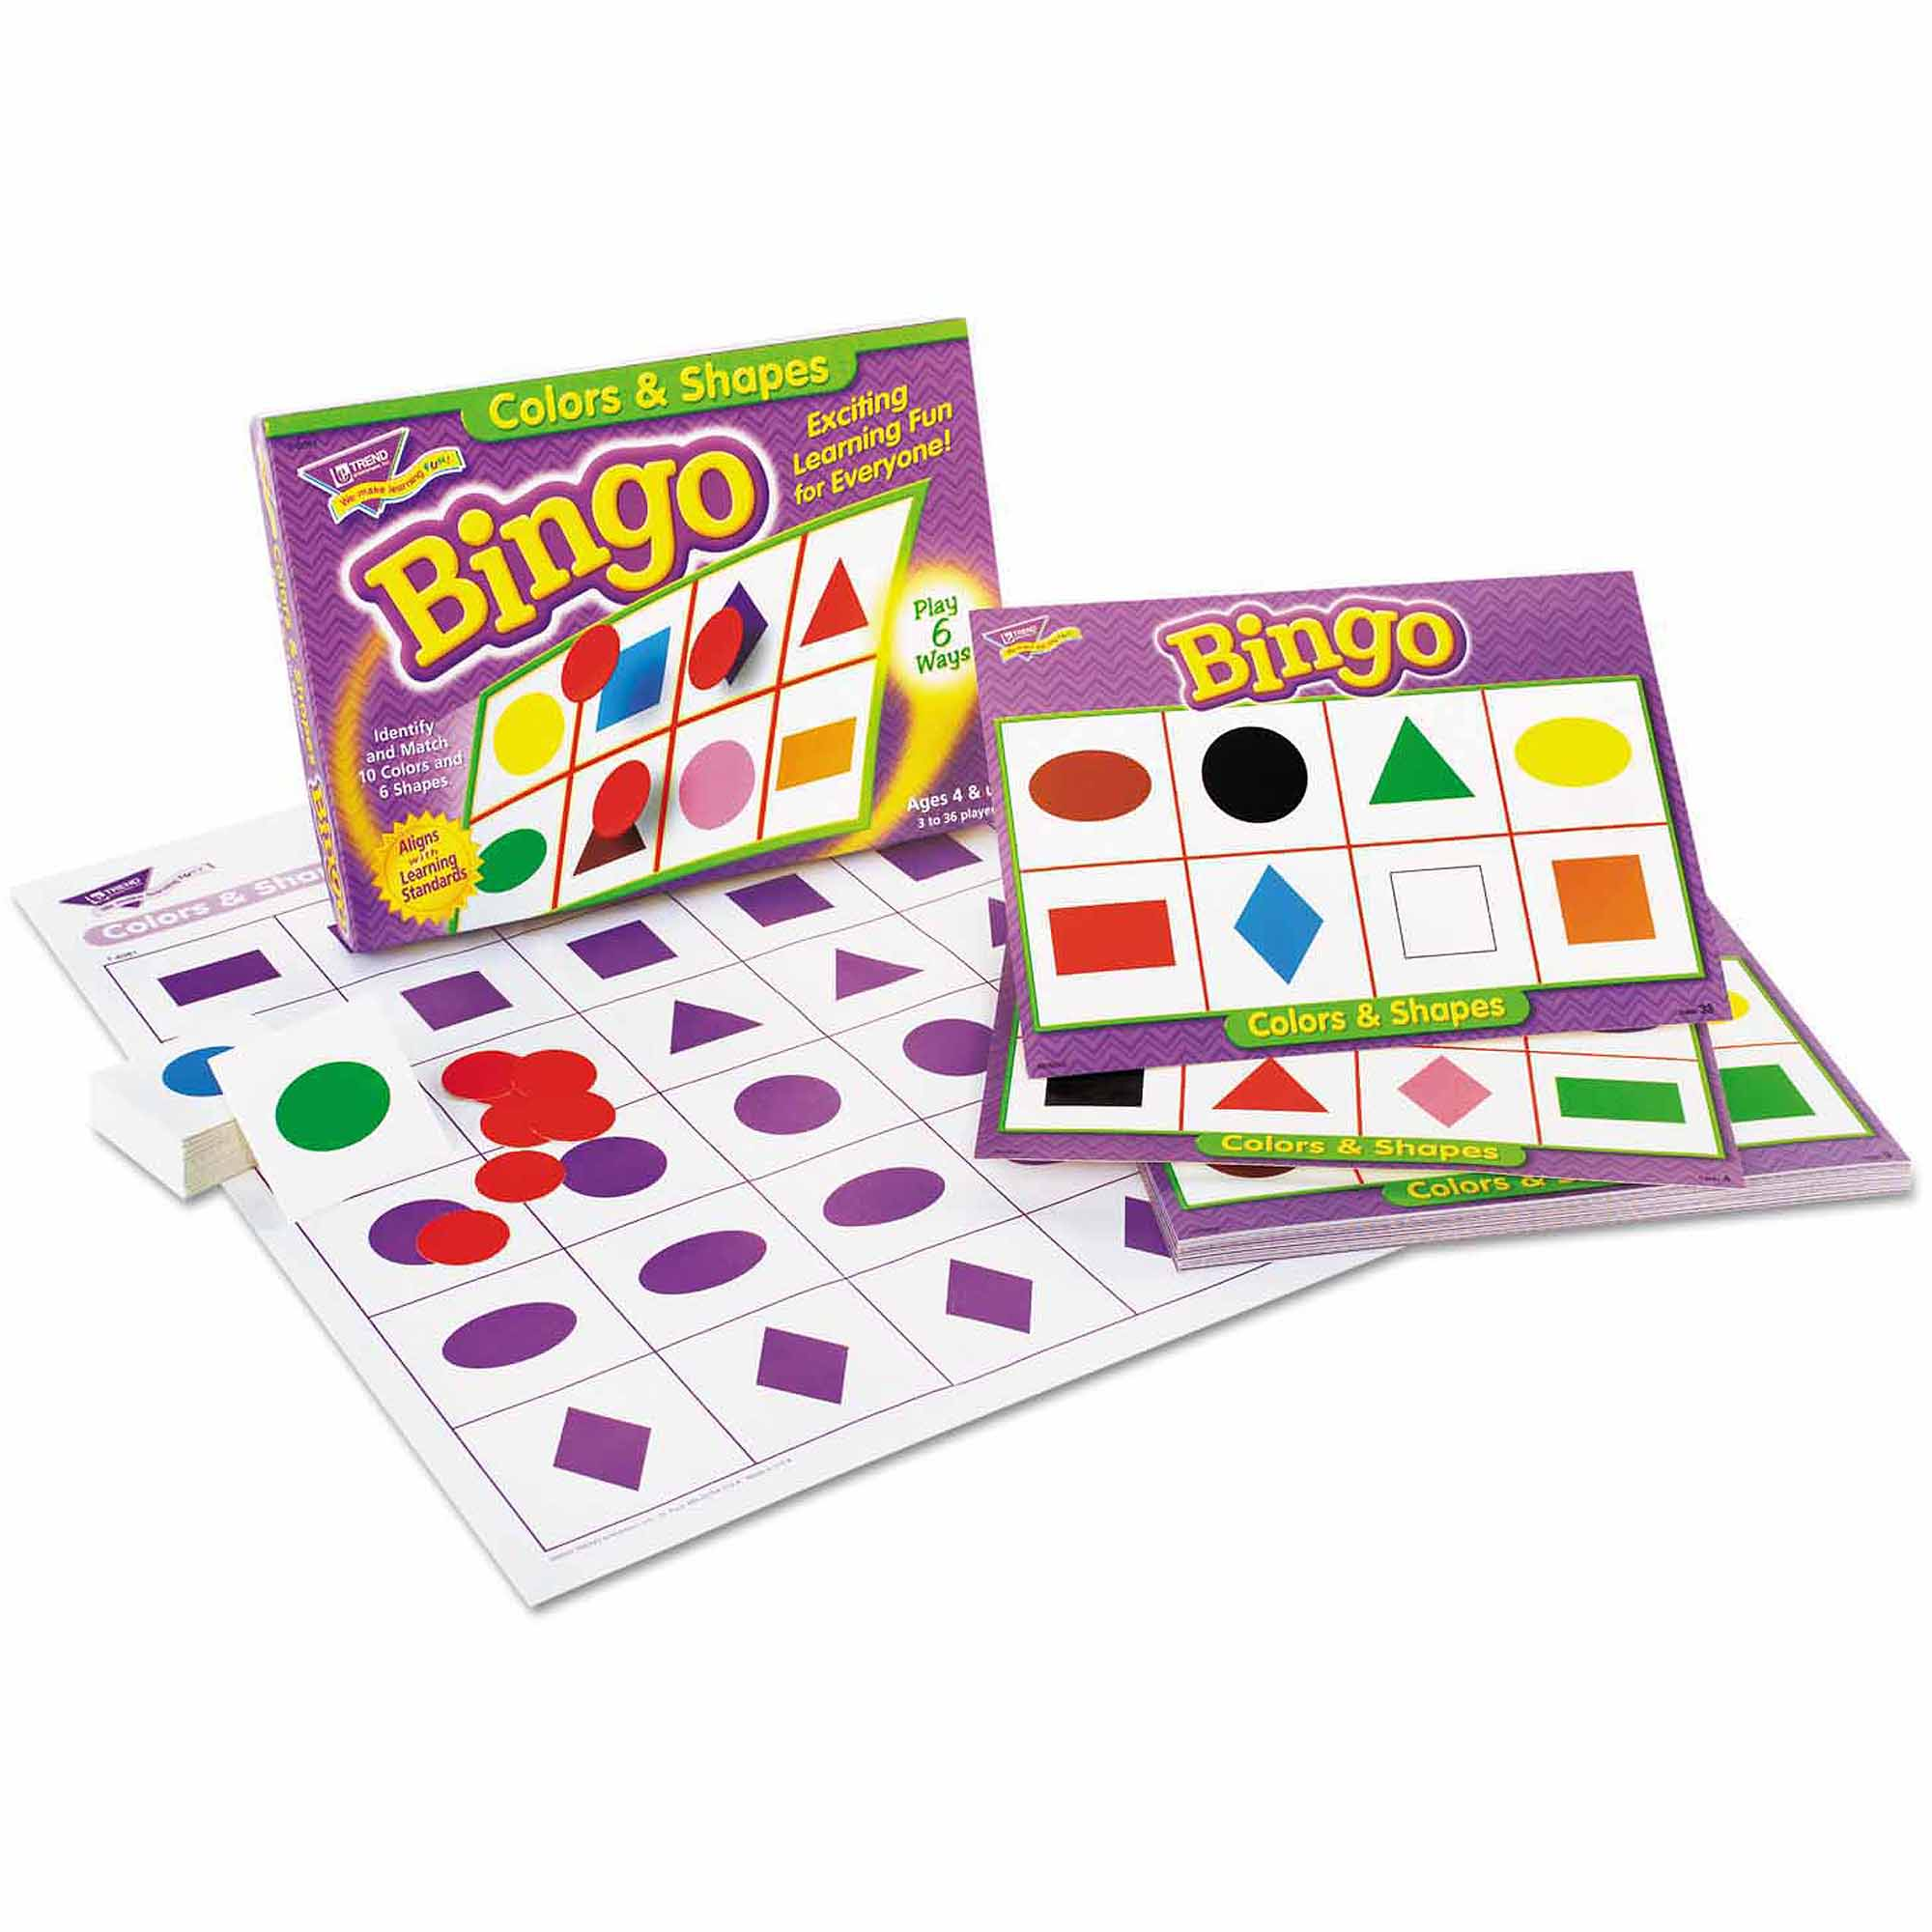 TREND Young Learner Bingo Game, Shapes